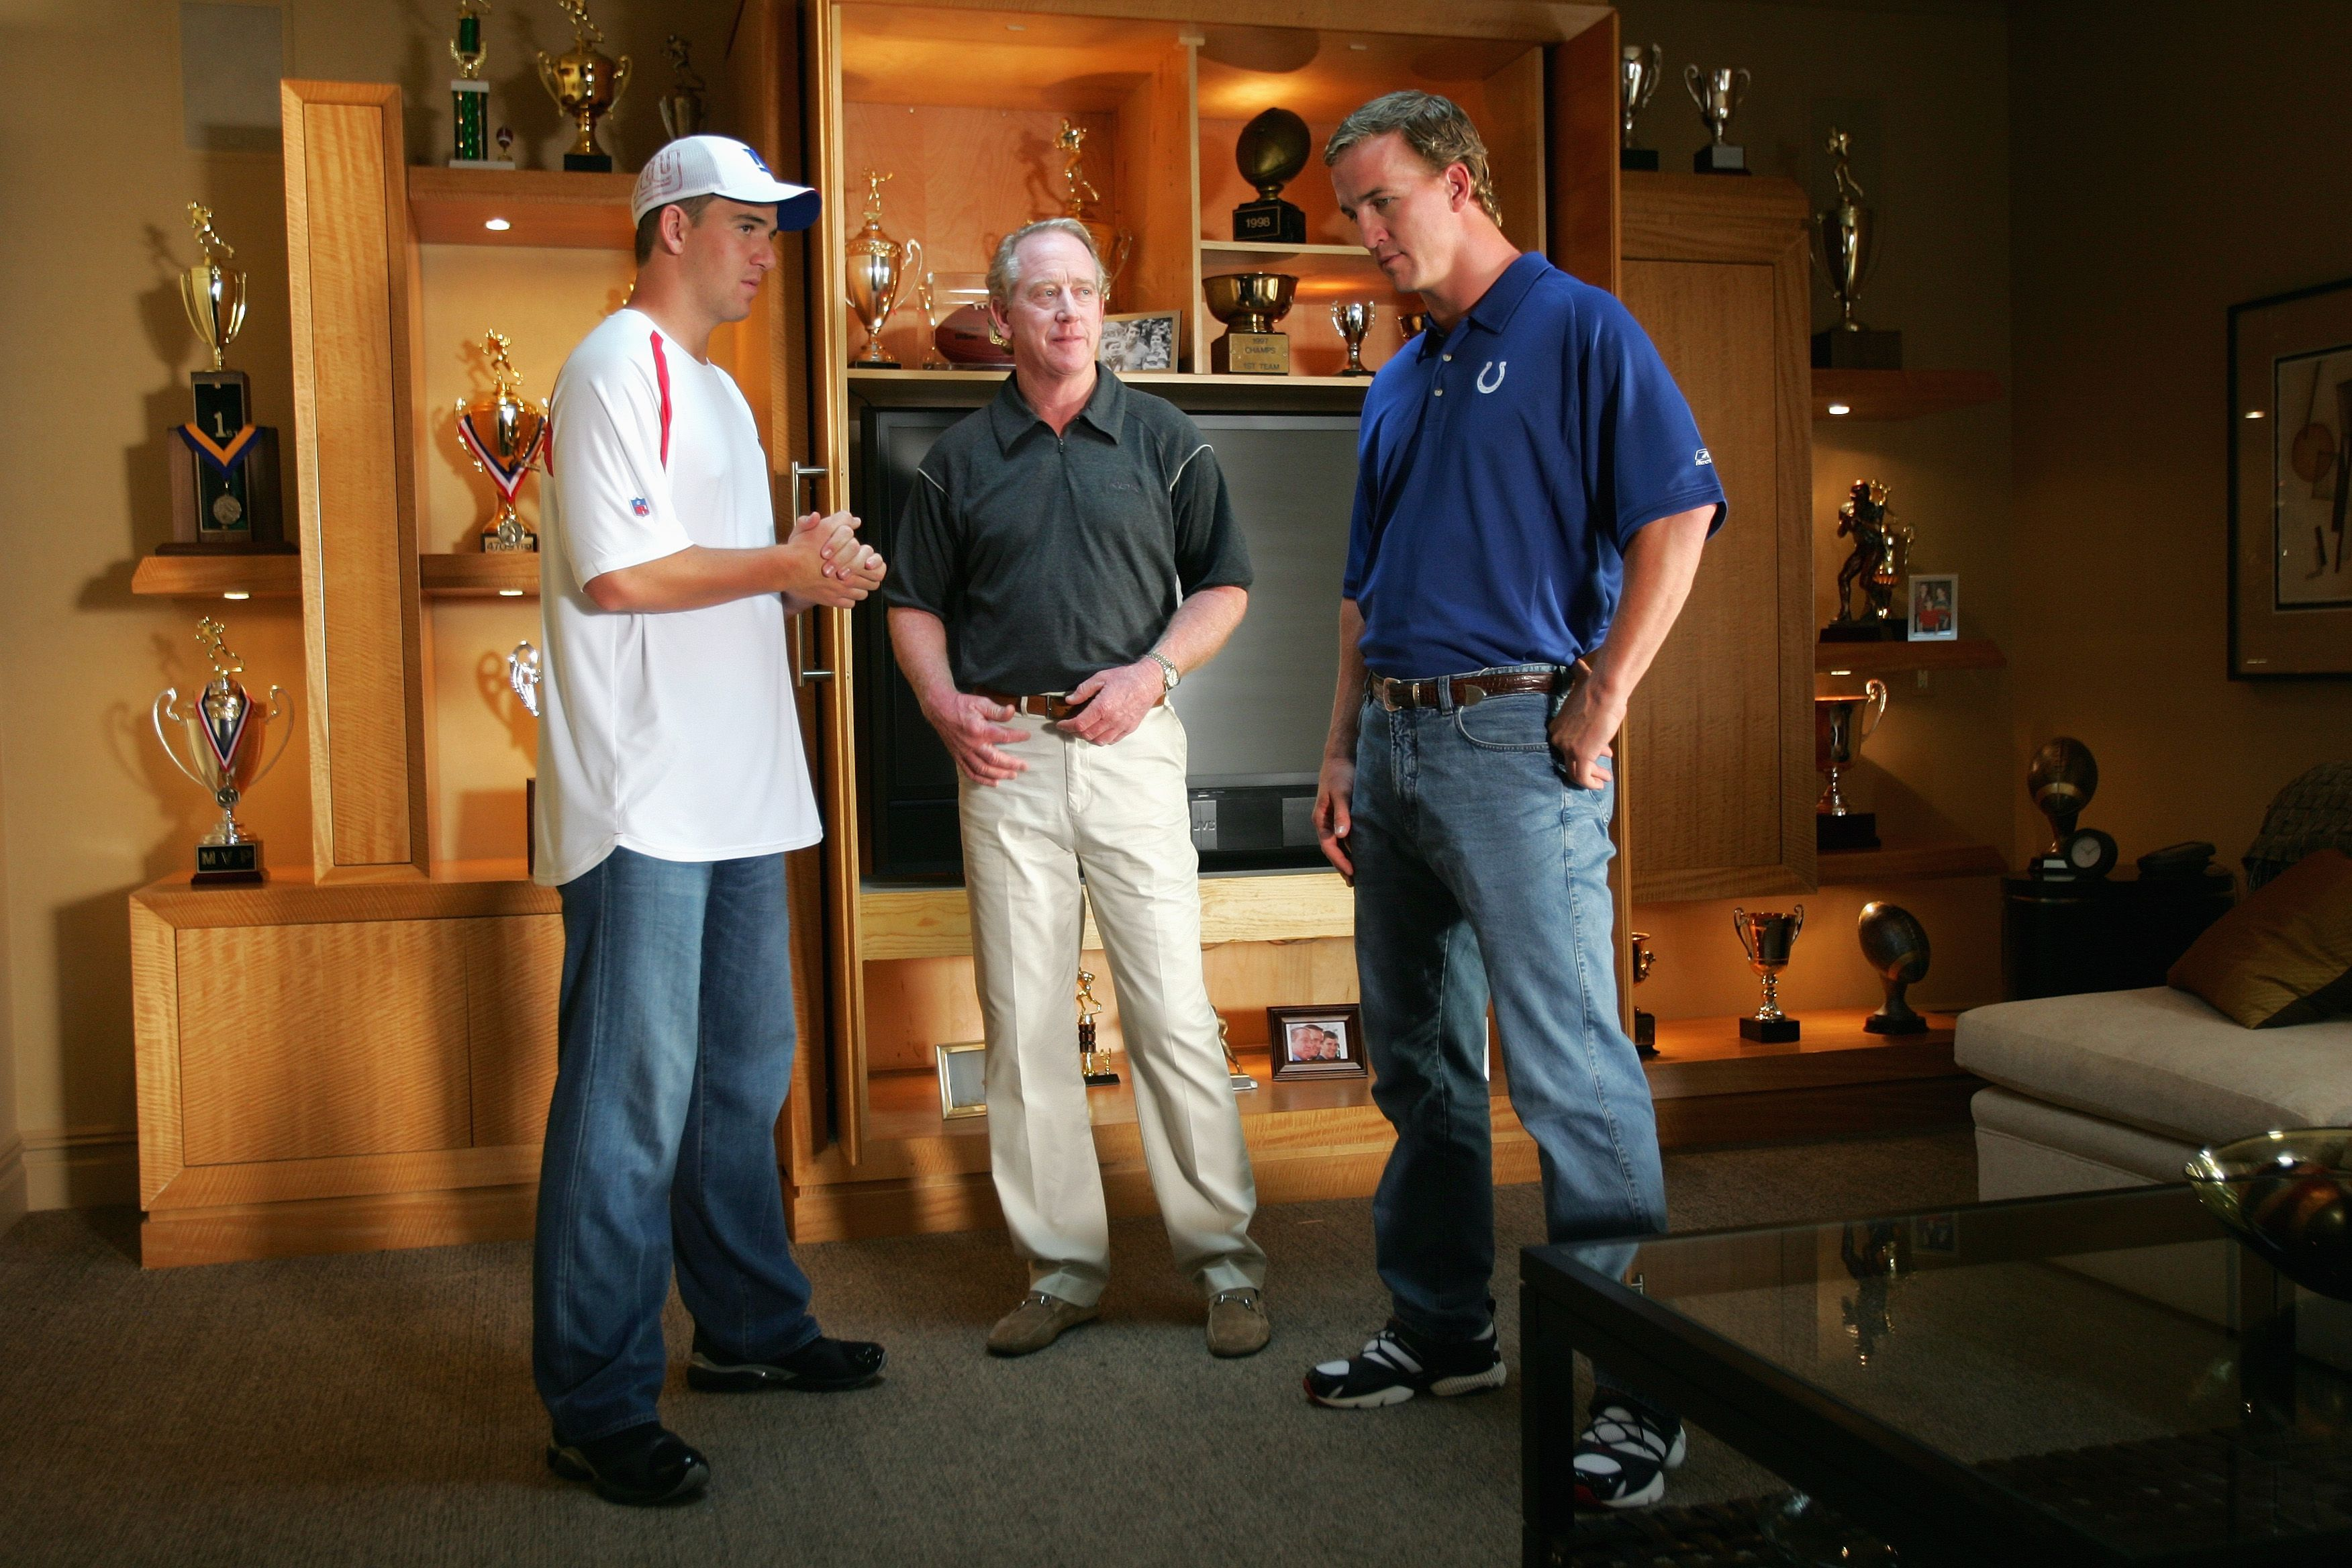 Archie and Peyton Manning on set during a Reebok commercial in 2006 in New Jersey   Source: YouTube.com/OfficialFritoLay